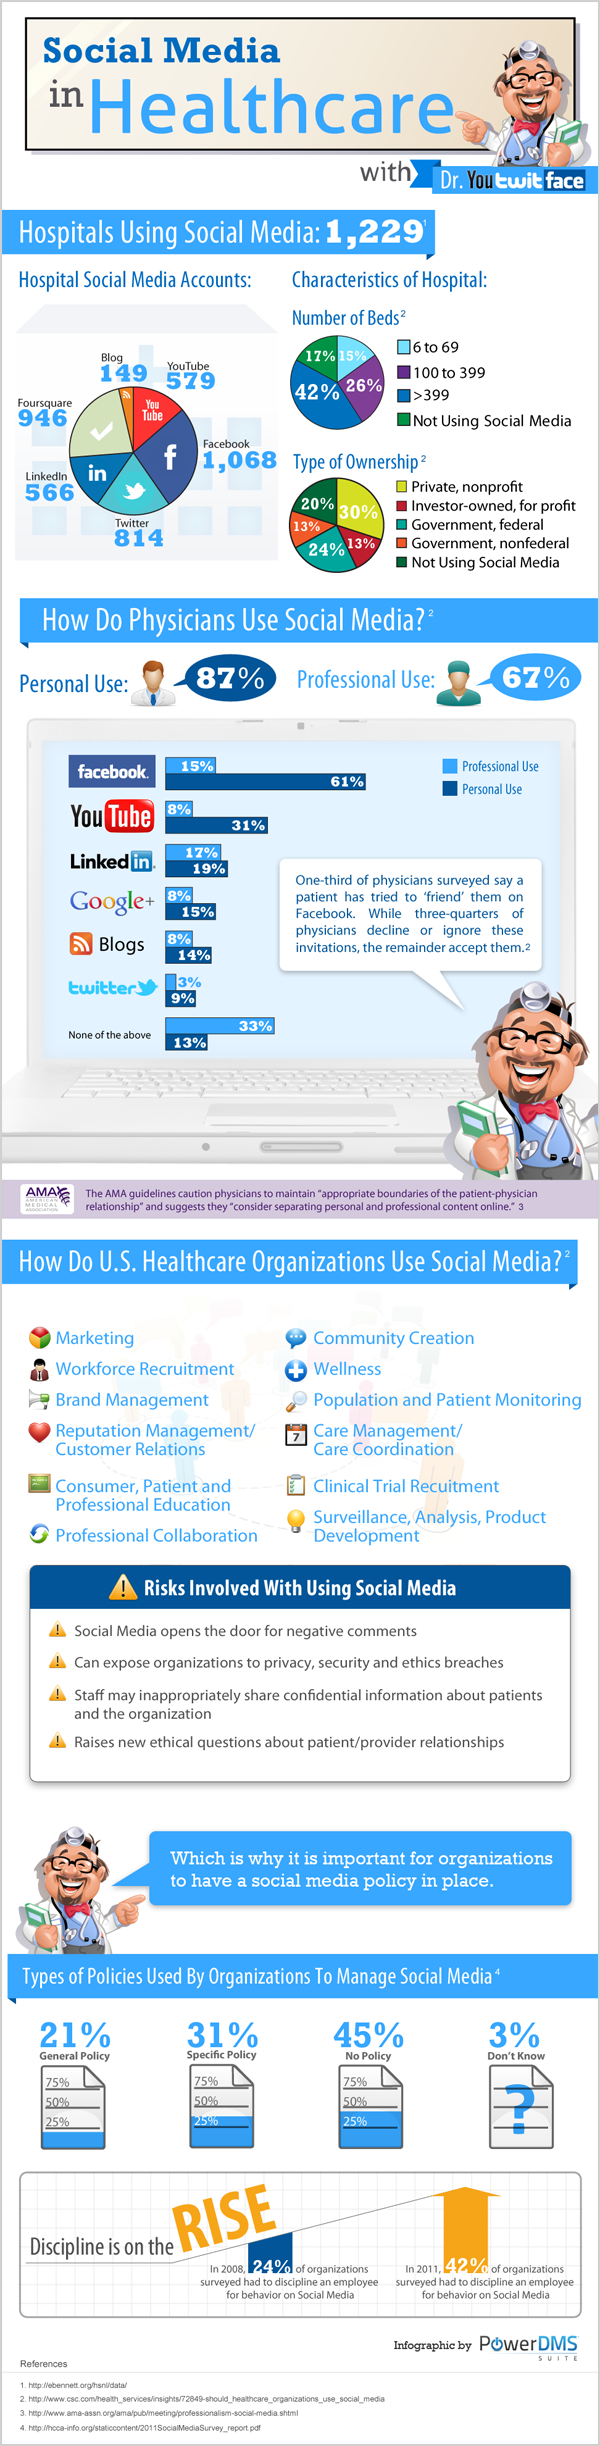 healthcare-social-media-infographic-600